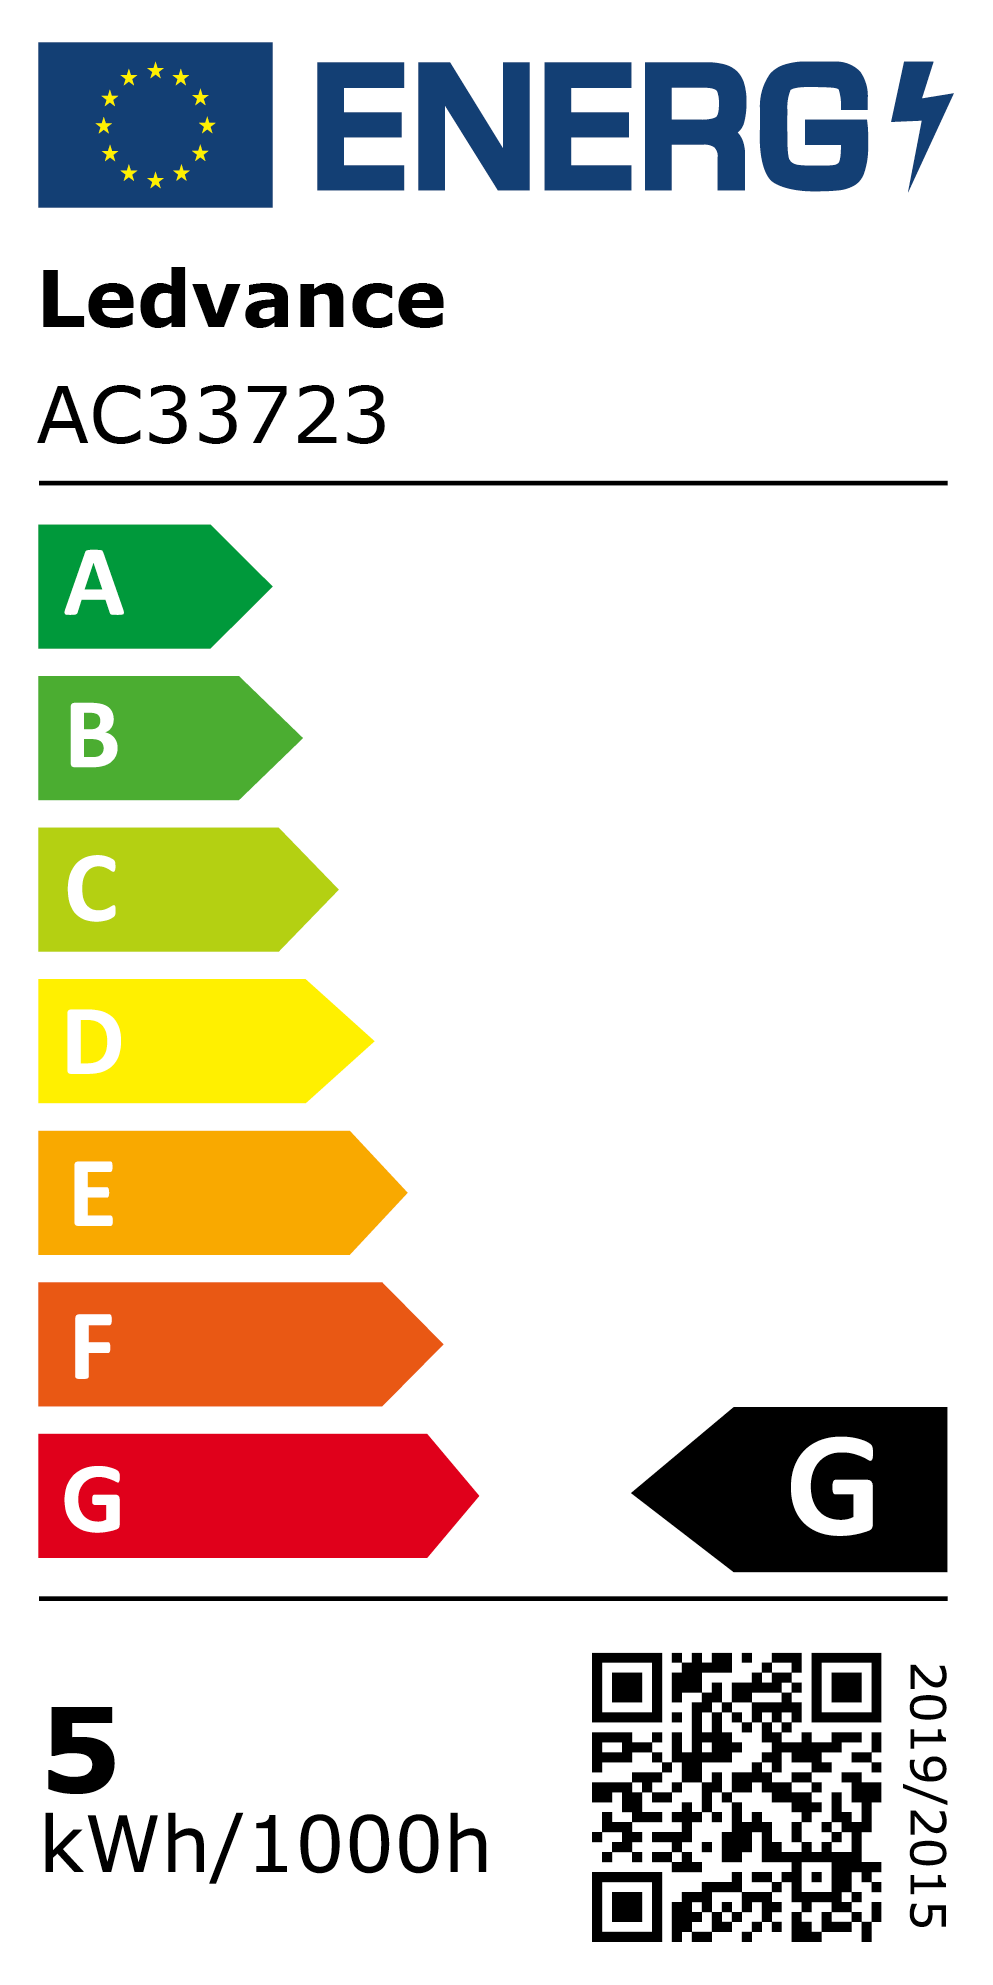 New 2021 Energy Rating Label: MPN AC33723